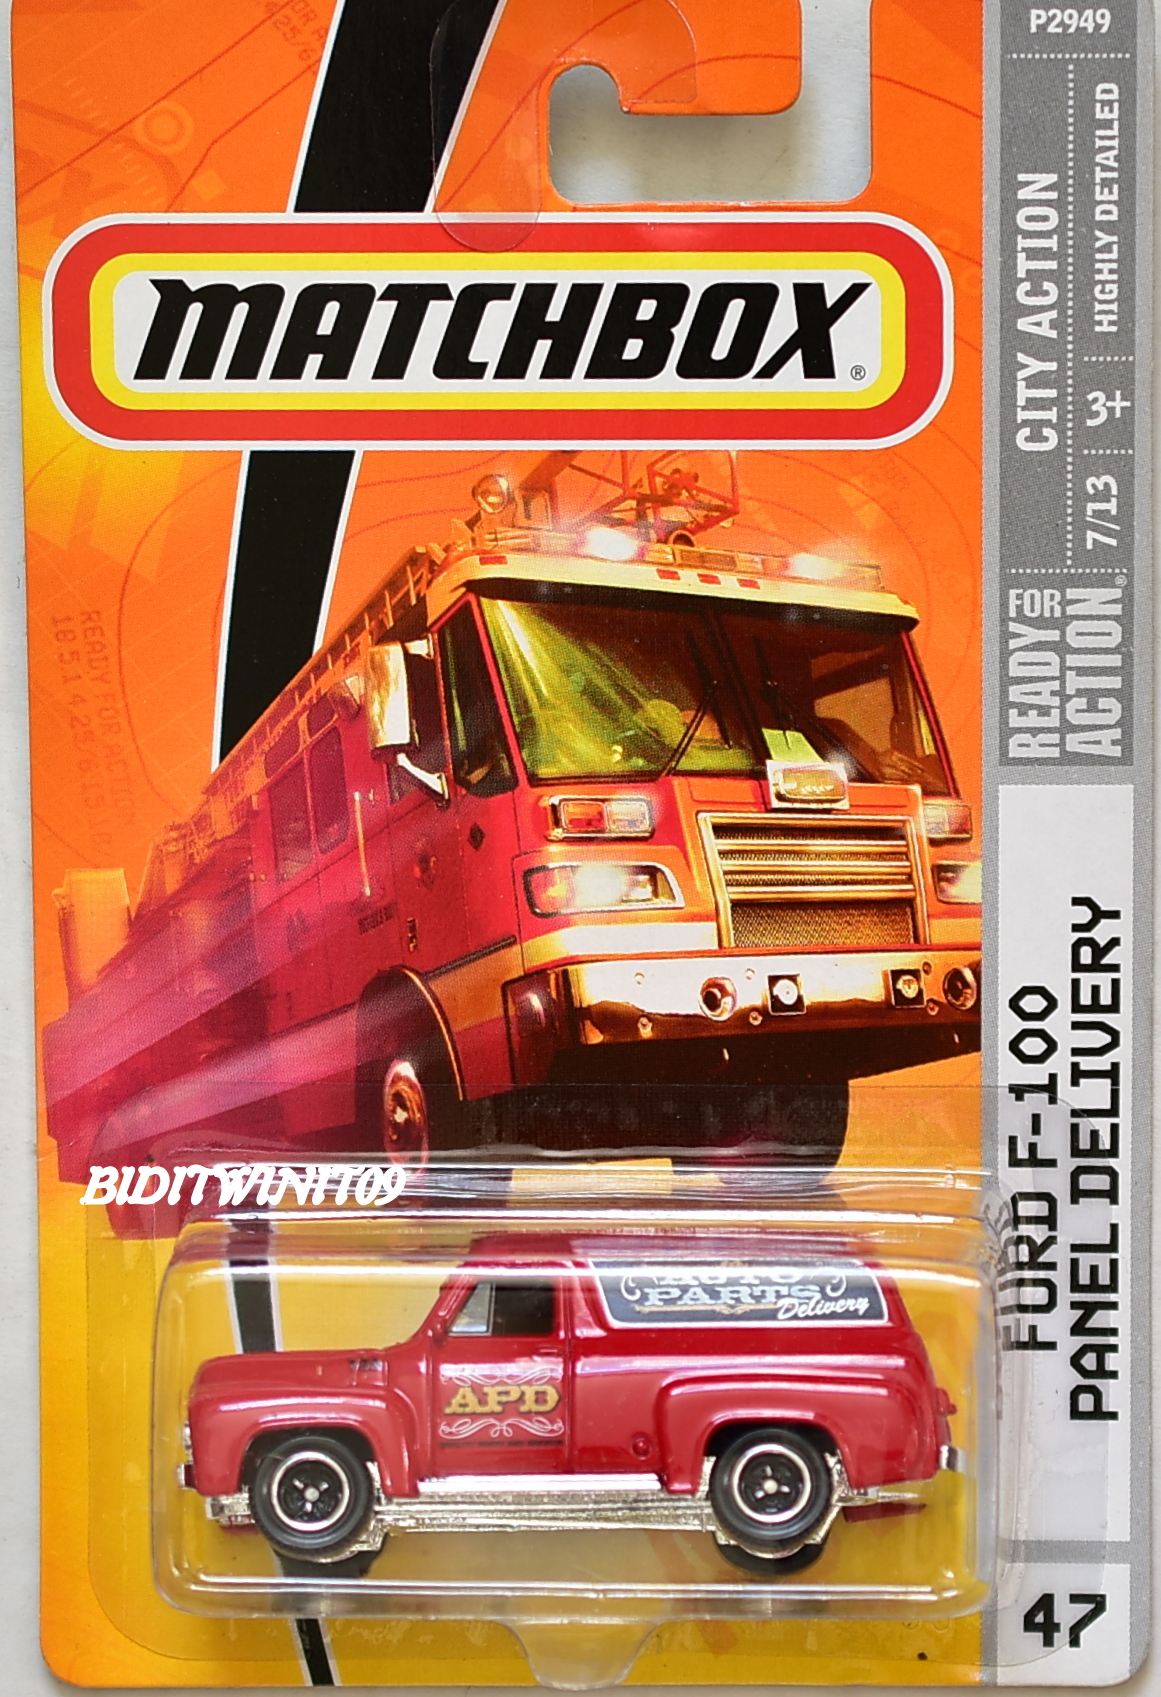 MATCHBOX 2009 CITY ACTION FORD F-100 PANEL DELIVERY #47 RED E+